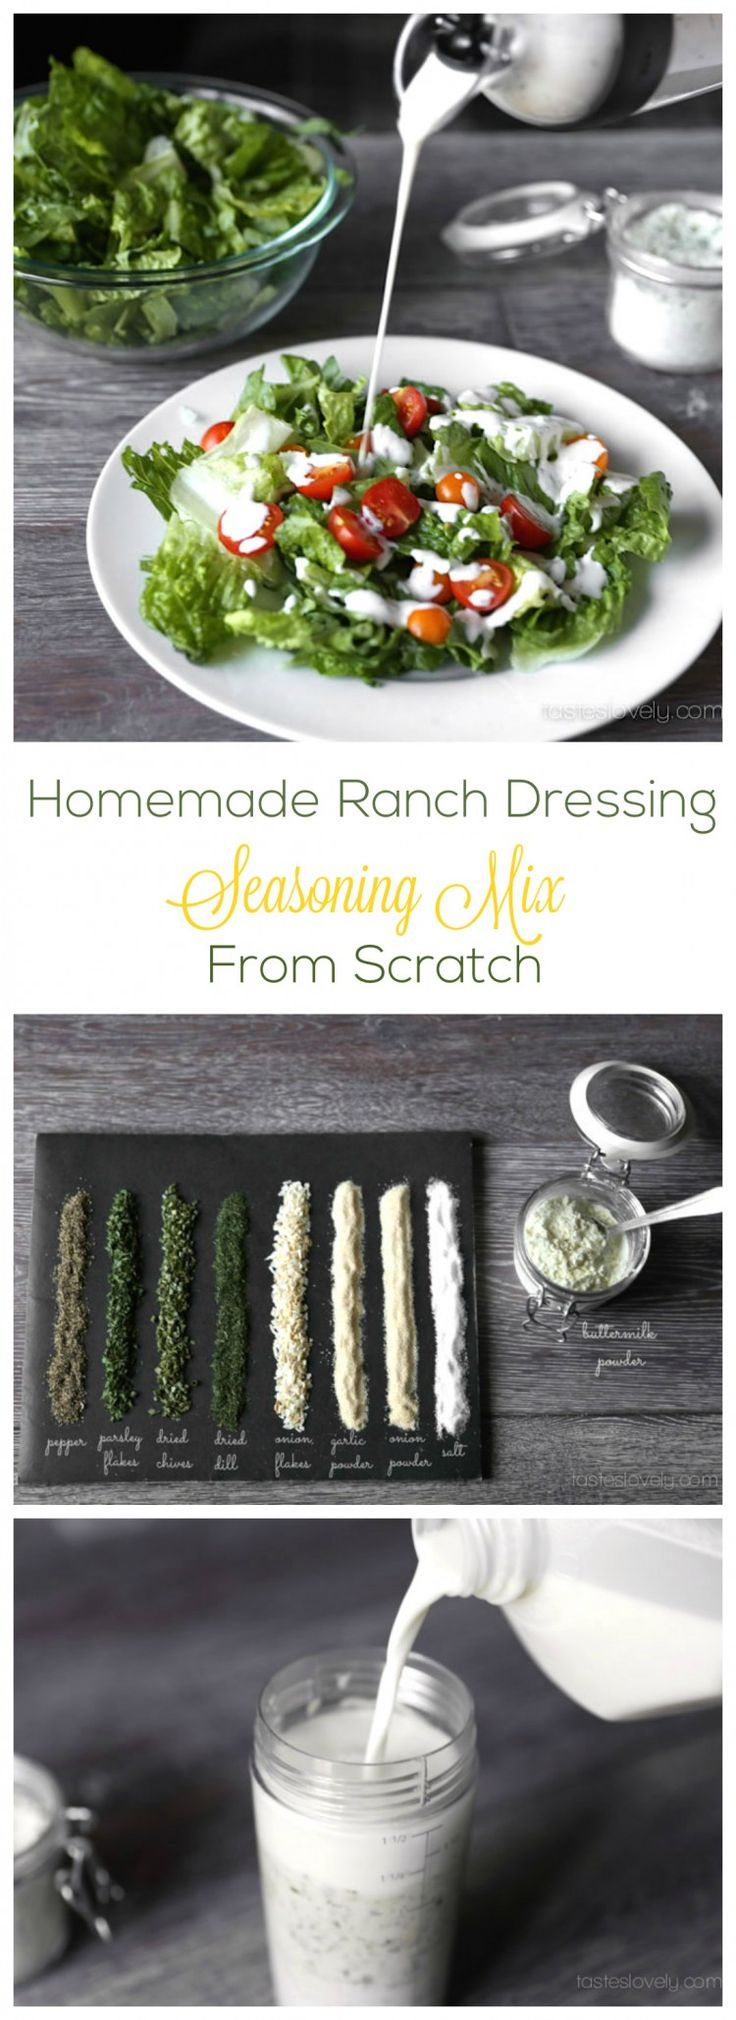 Homemade Ranch Dressing Mix from Scratch - the BEST ranch ever!